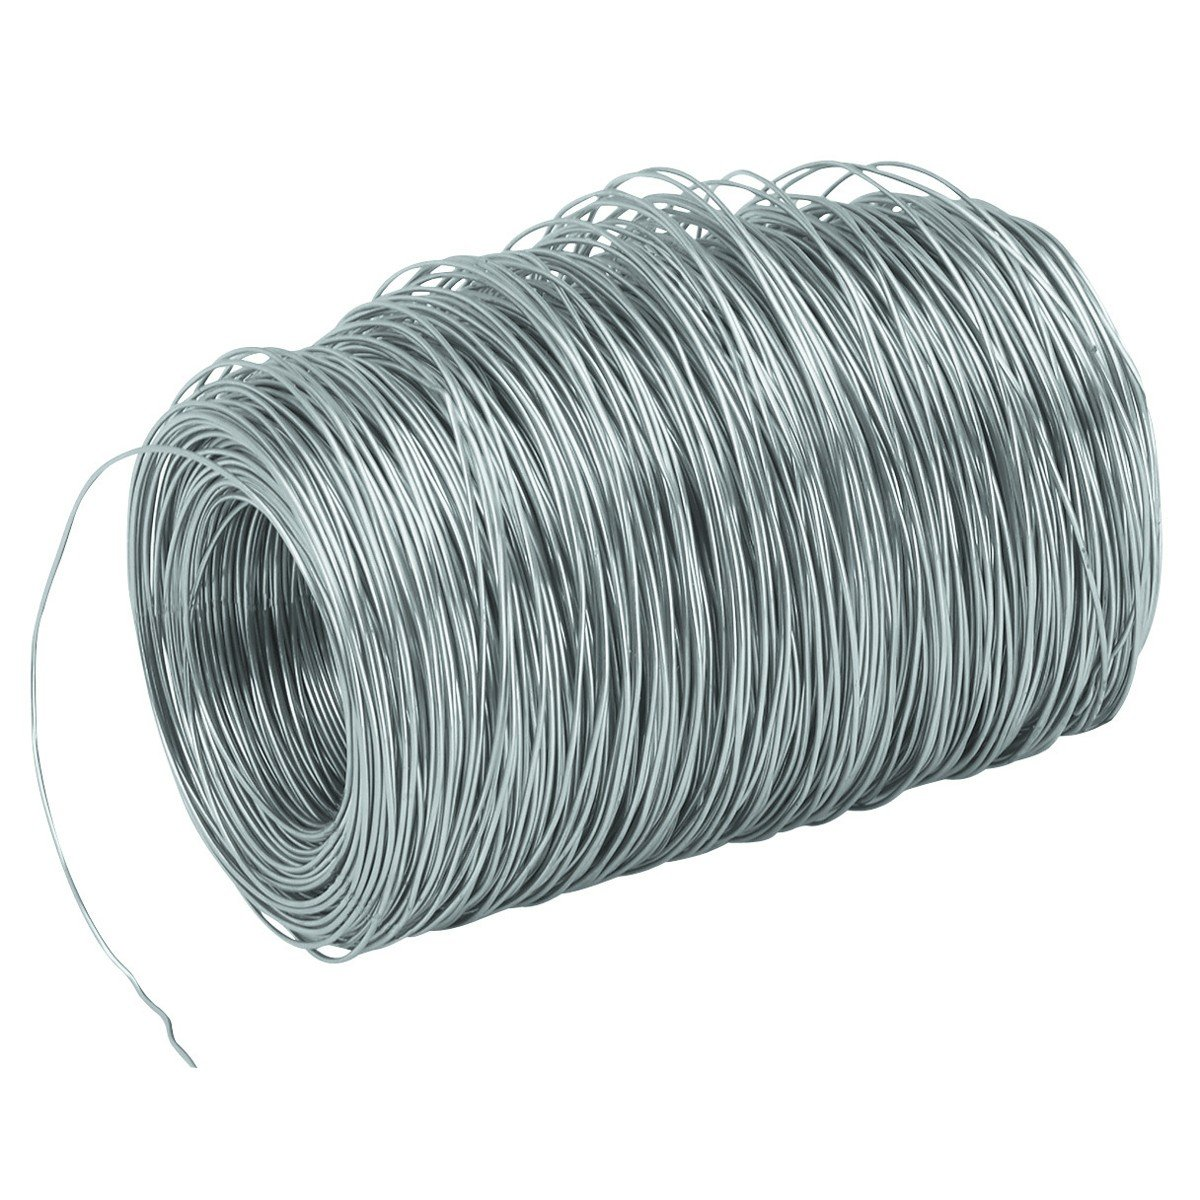 0.041 Stainless Steel Lock Wire, 1 Lb. Coil: Cable And Wire Rope ...